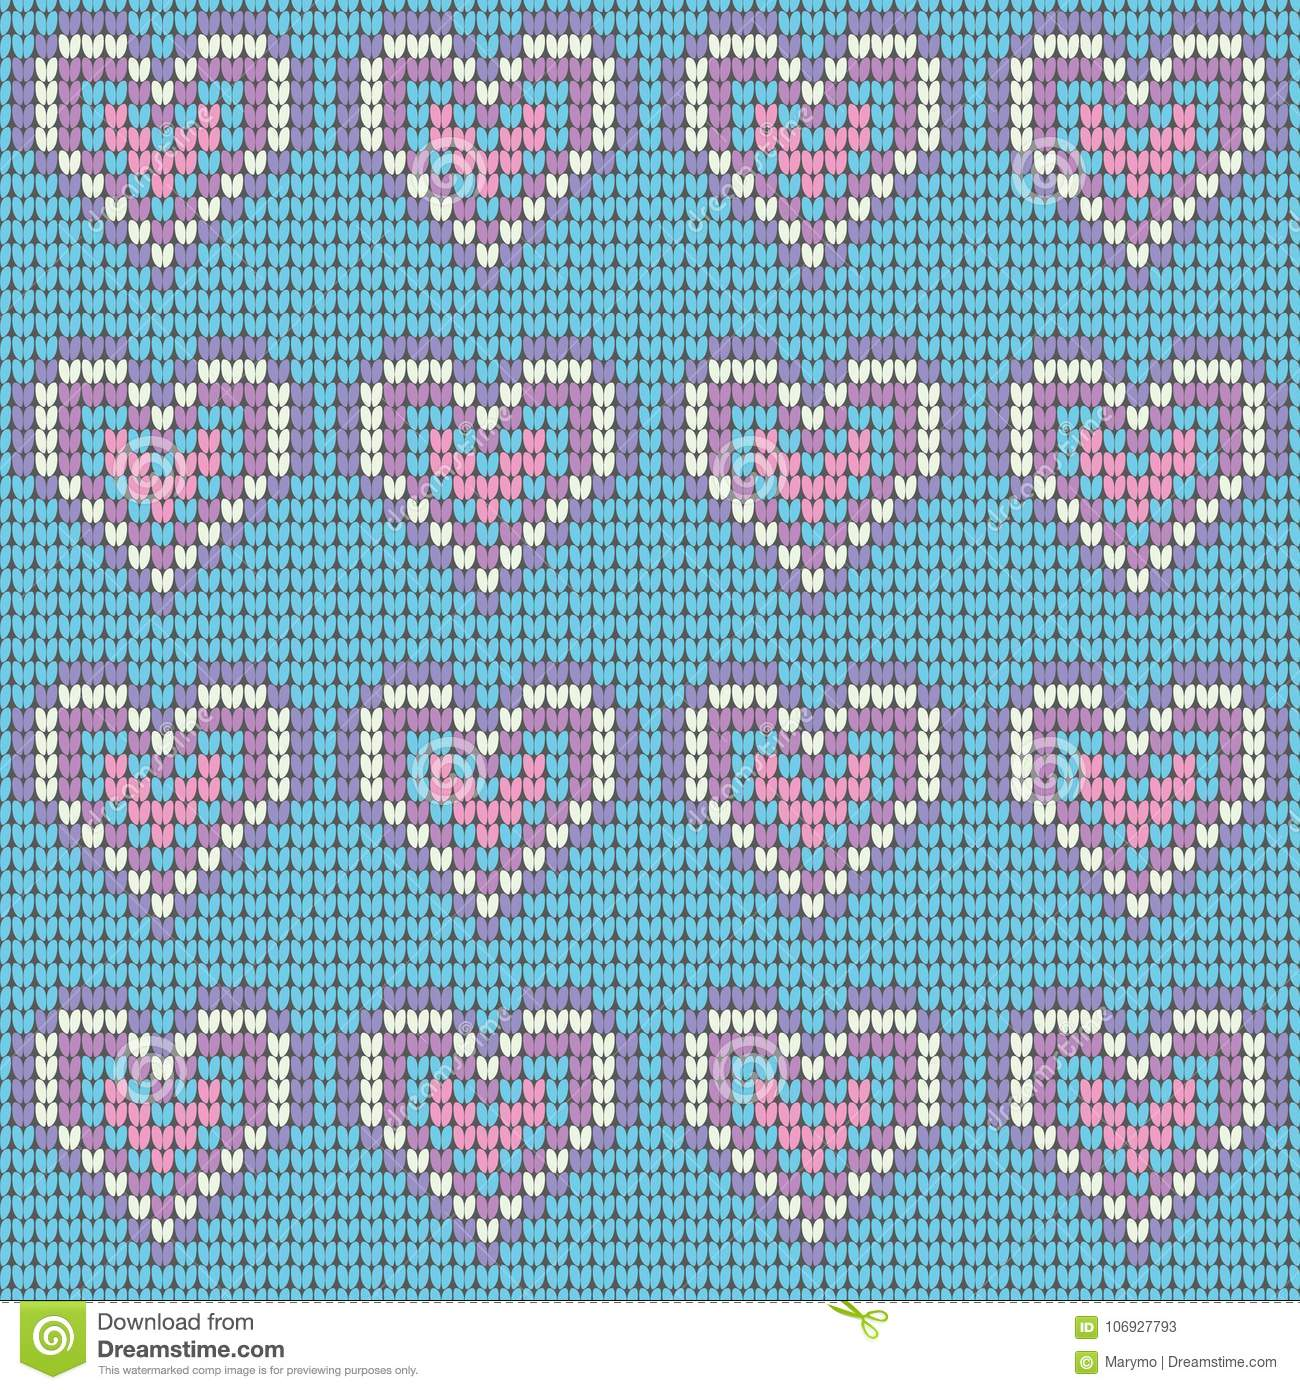 Valentines Day Love Heart Knitted Seamless Pattern Textures In Blue